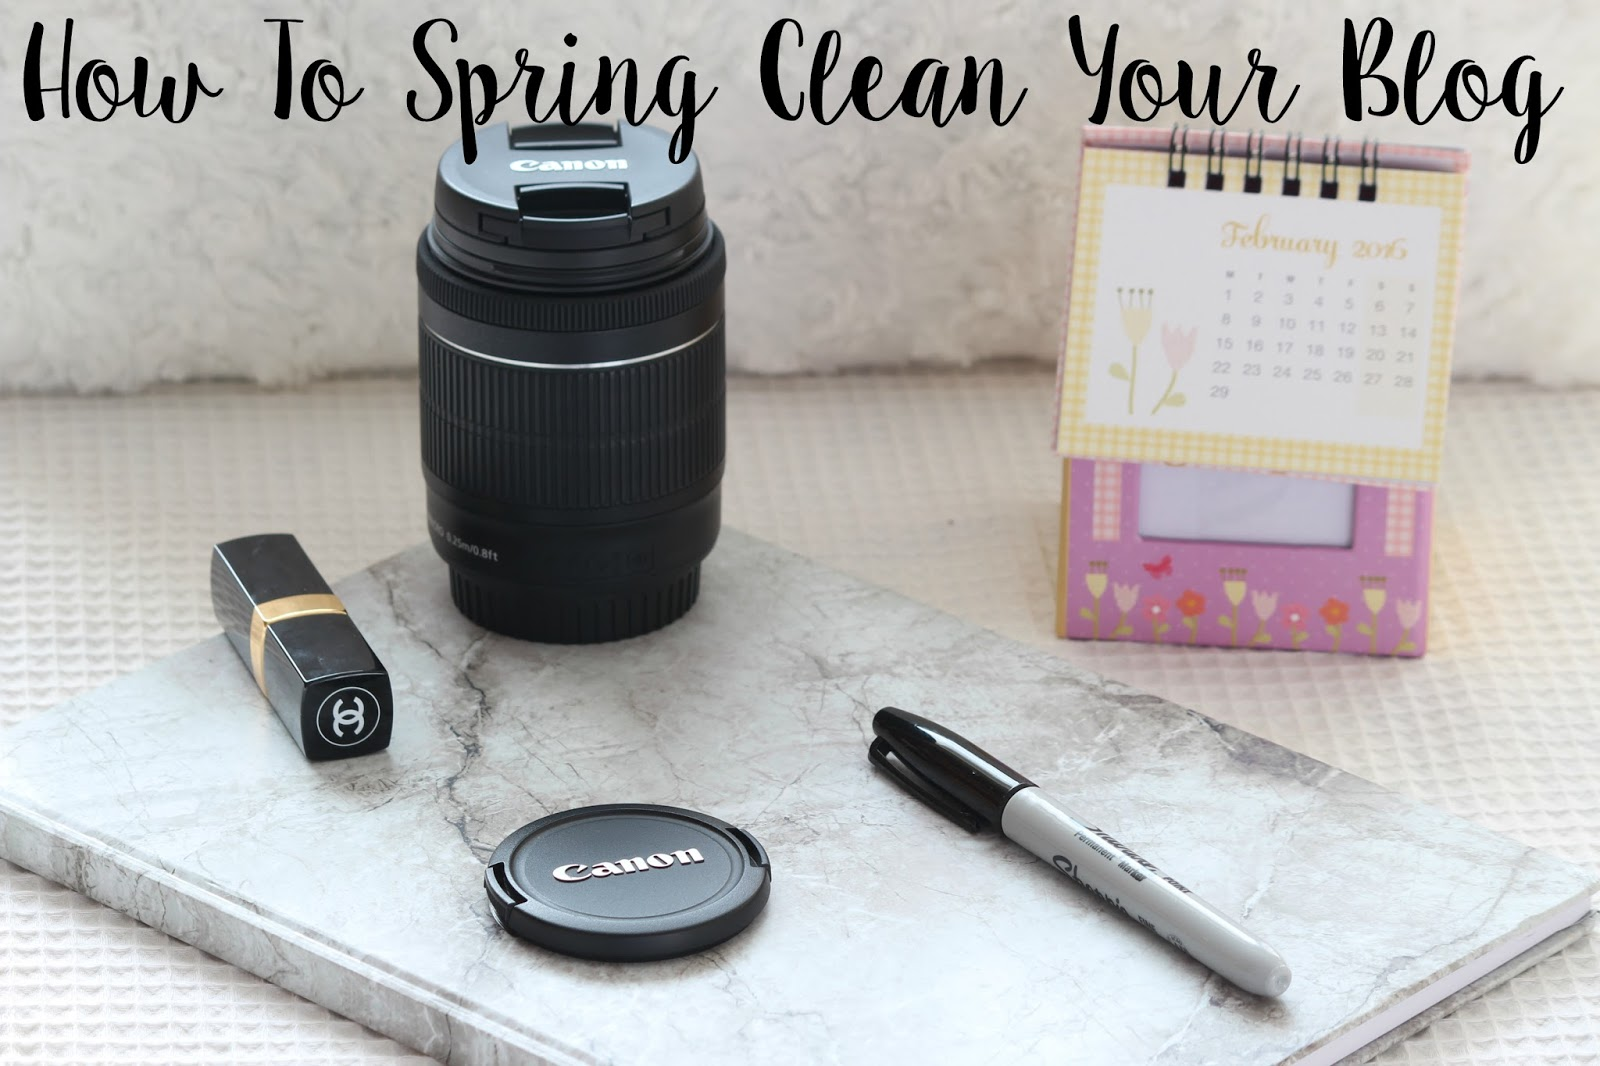 How To Spring Clean Your Blog advice tips help UK lifestyle